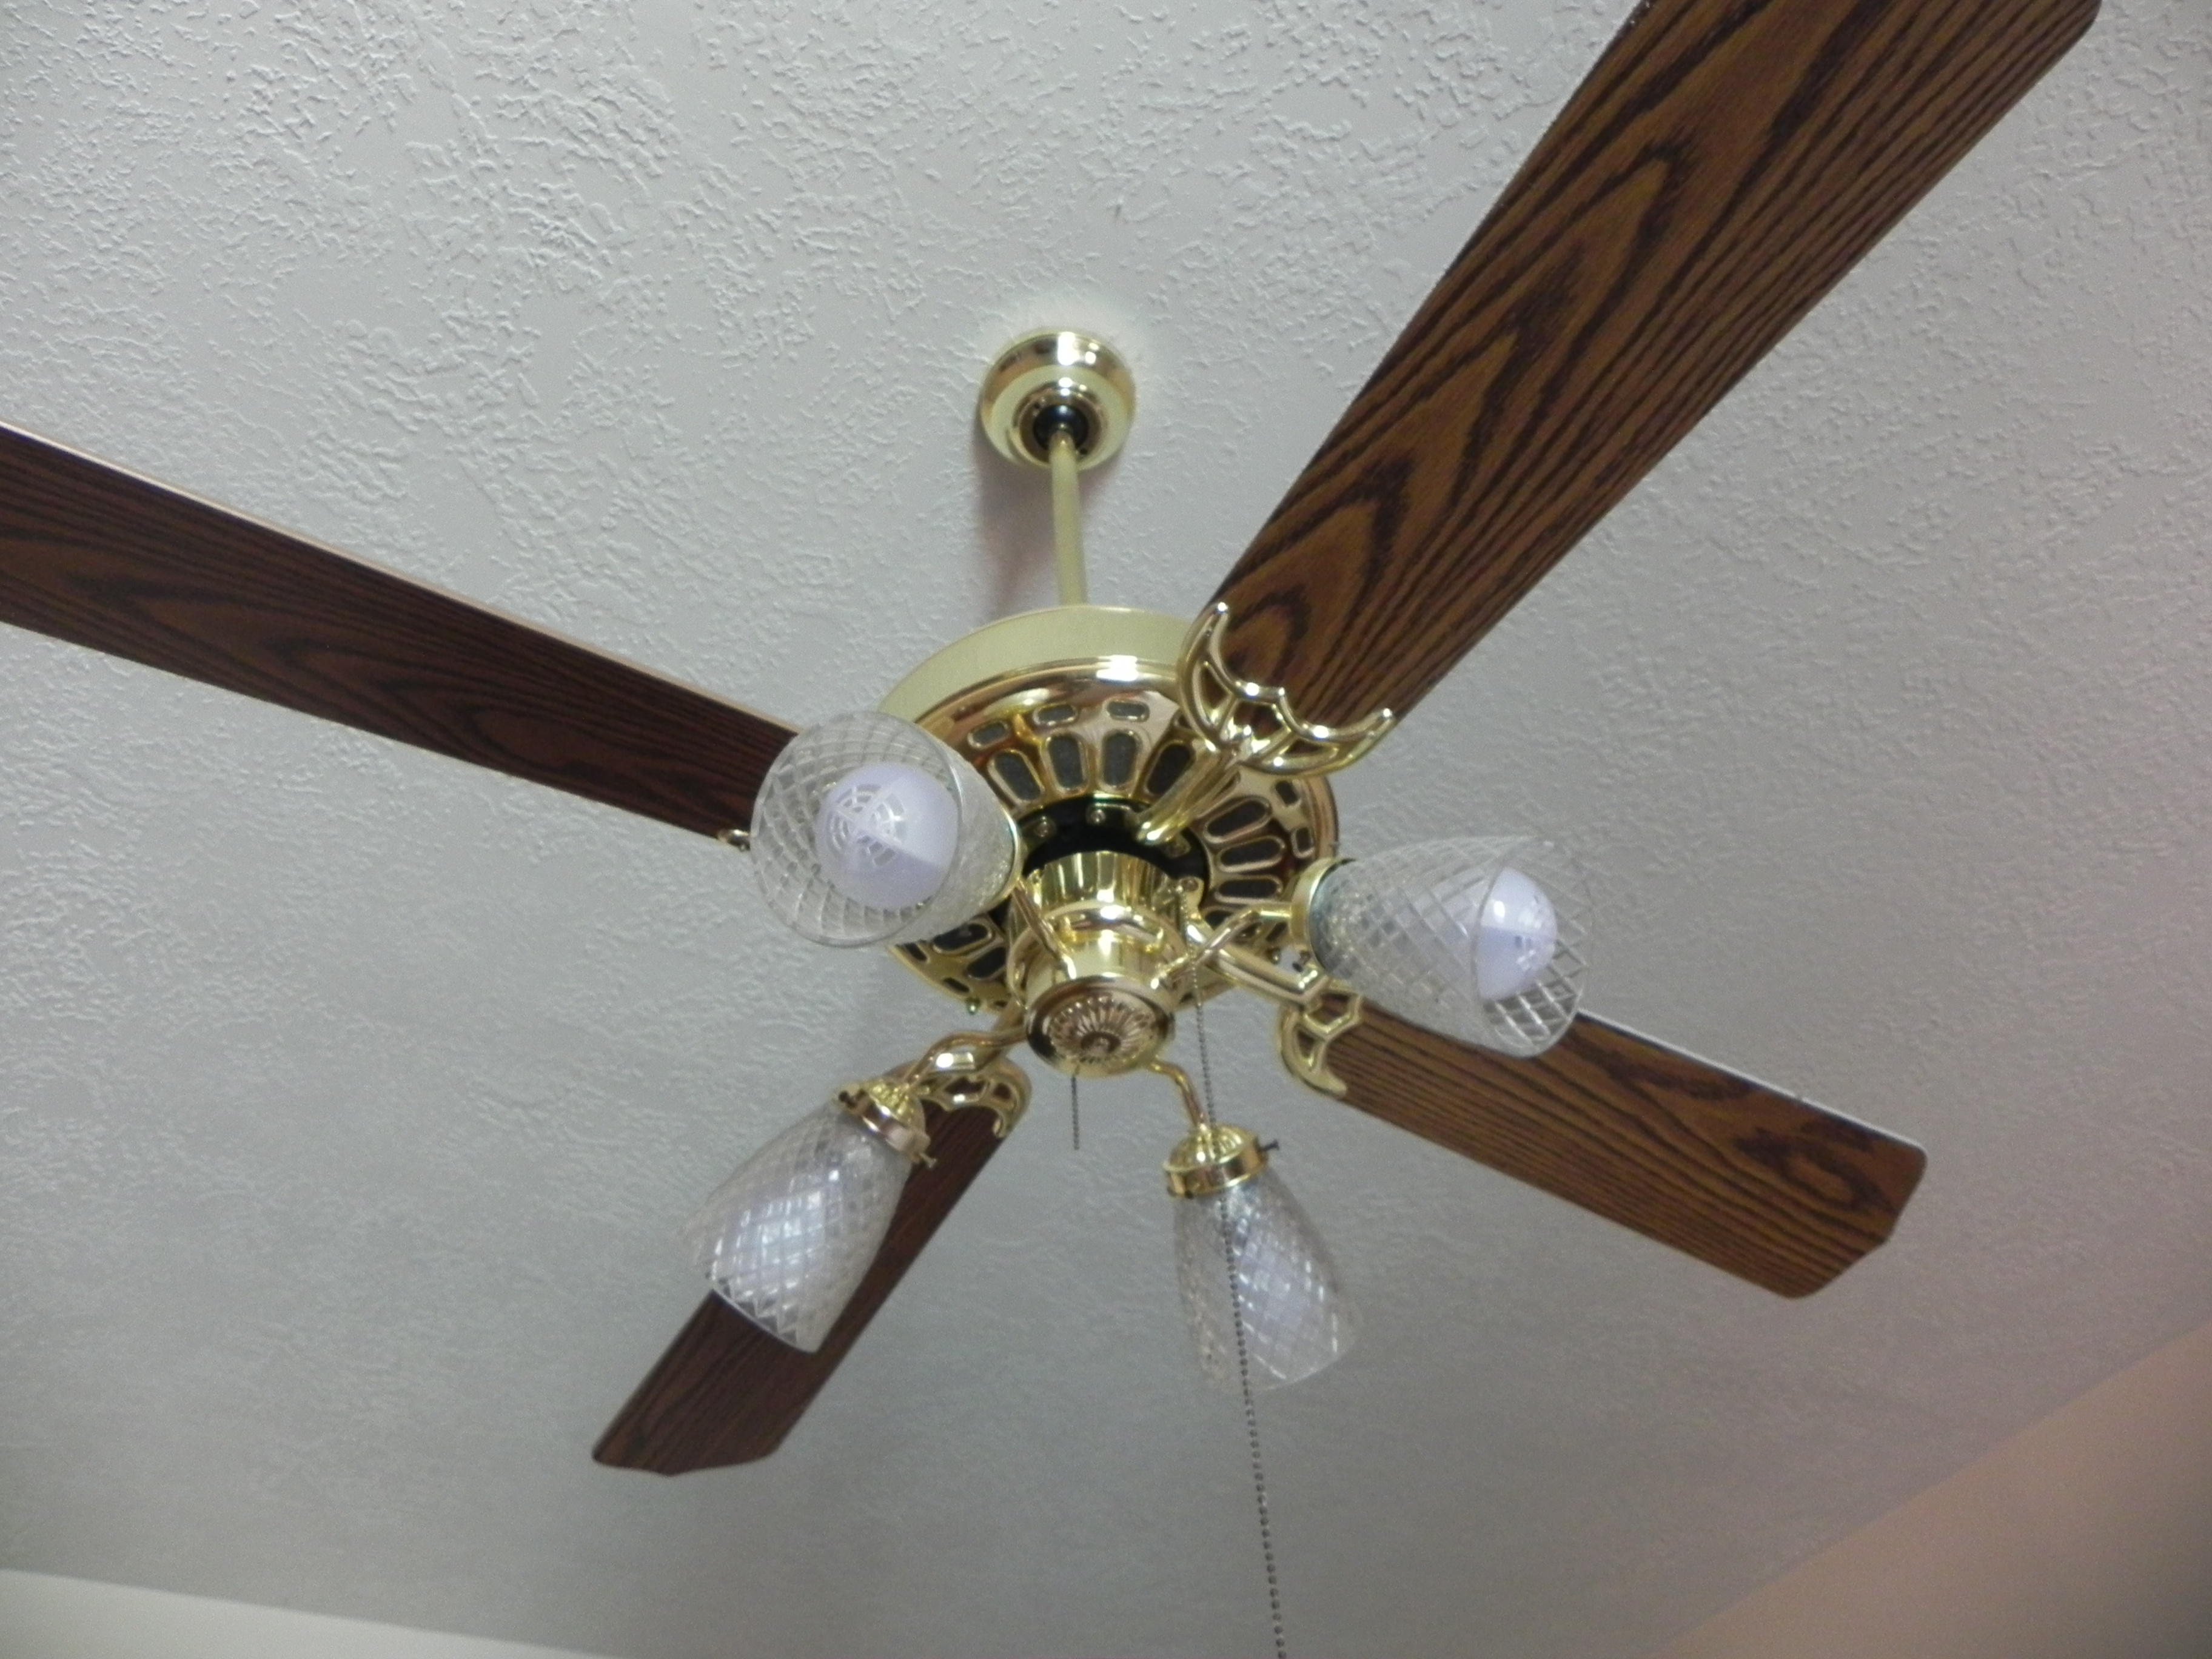 White Gold Ceiling Fan Updating The Ceiling Fans With Diet Coke In Hand